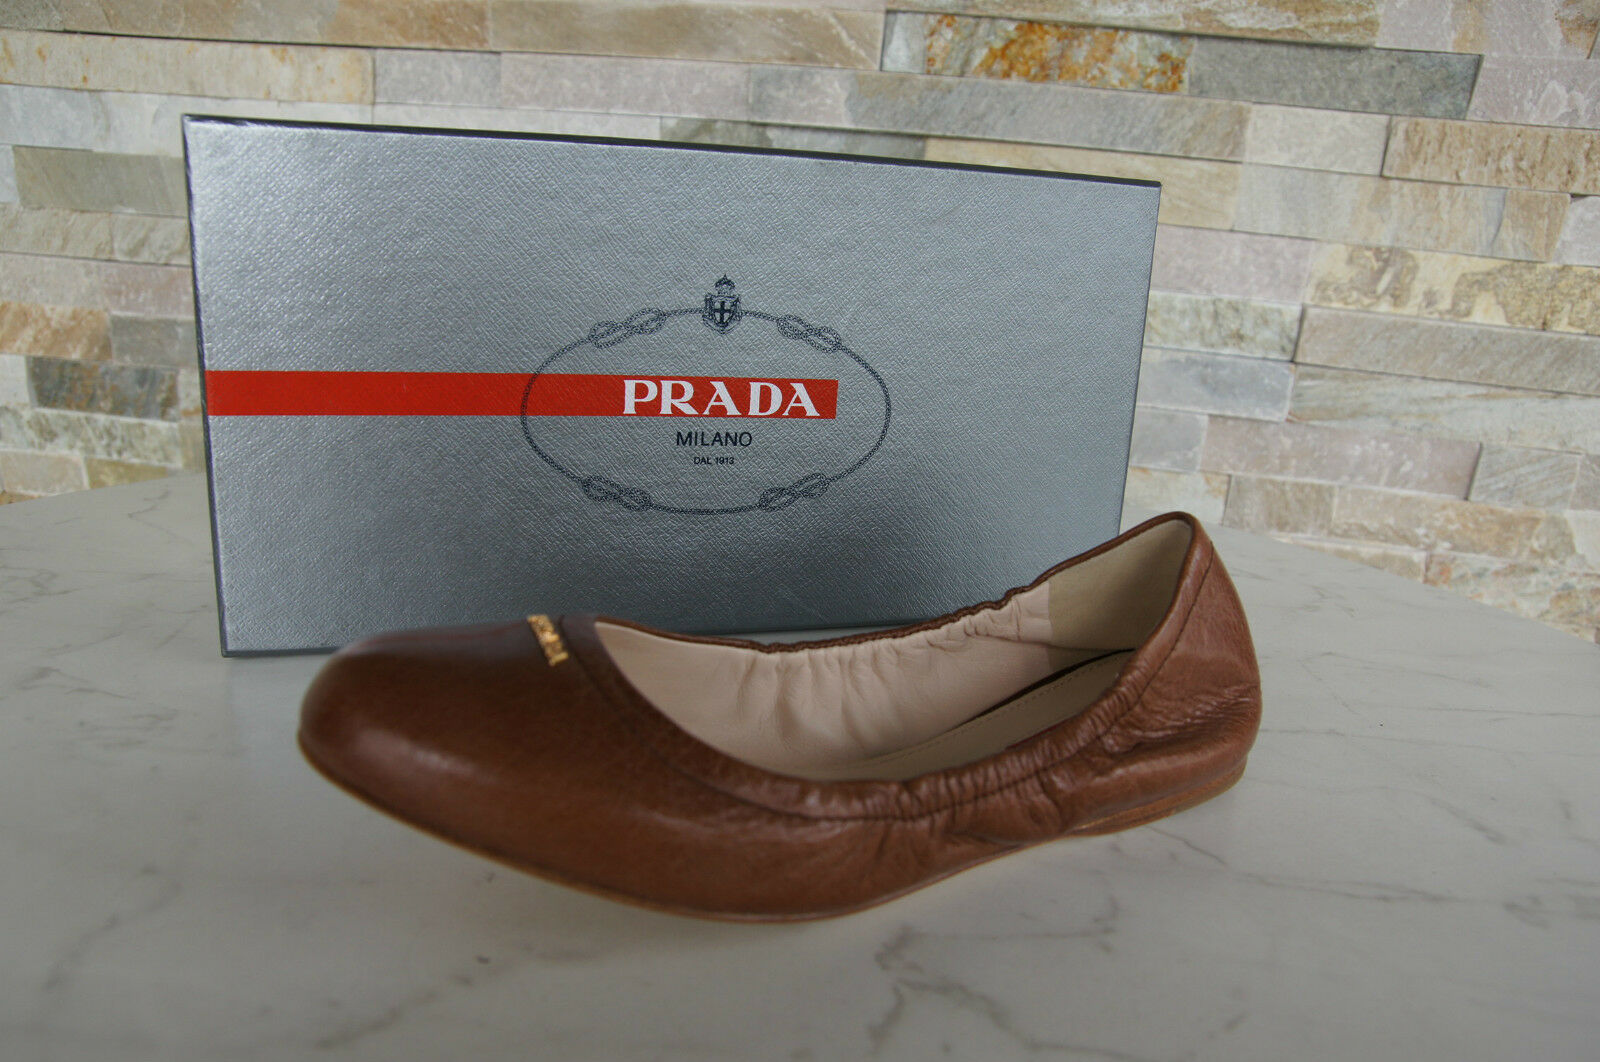 Prada Size 36 Ballerinas Slip on shoes shoes 3F5659 pinkwood New Previously